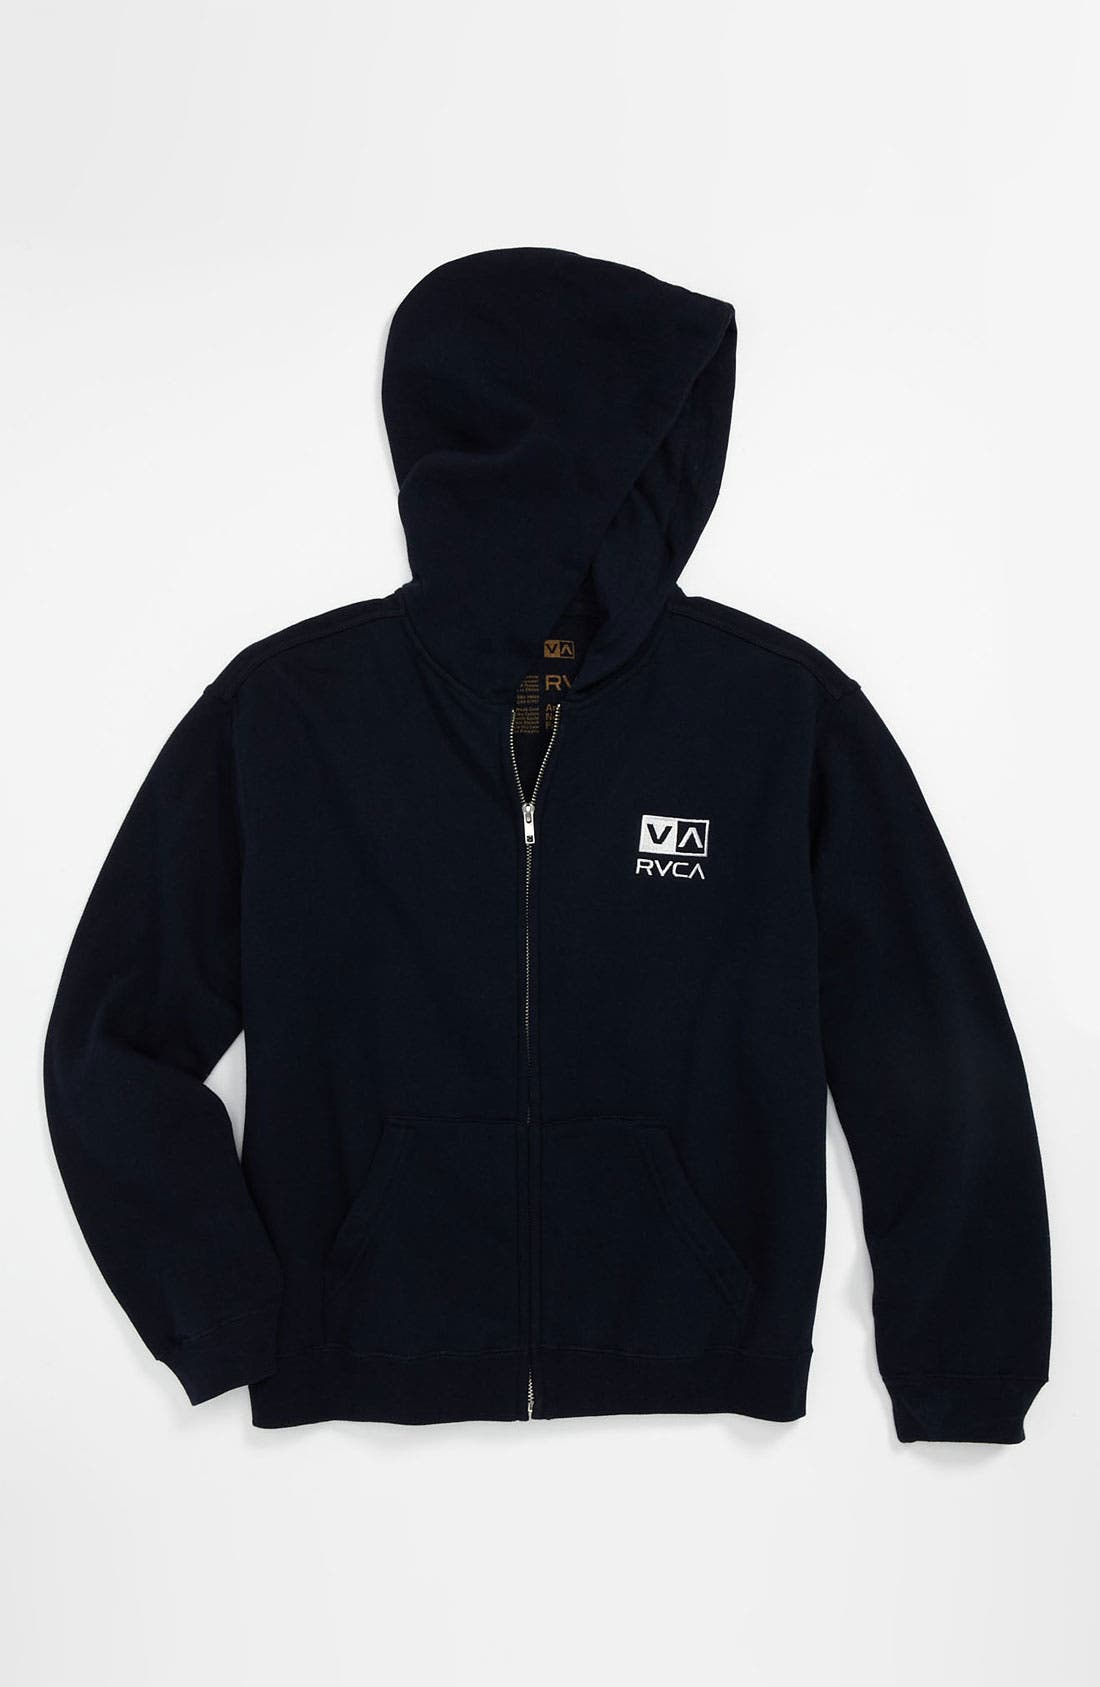 Main Image - RVCA 'VA Little' Zip Hoodie (Big Boys)